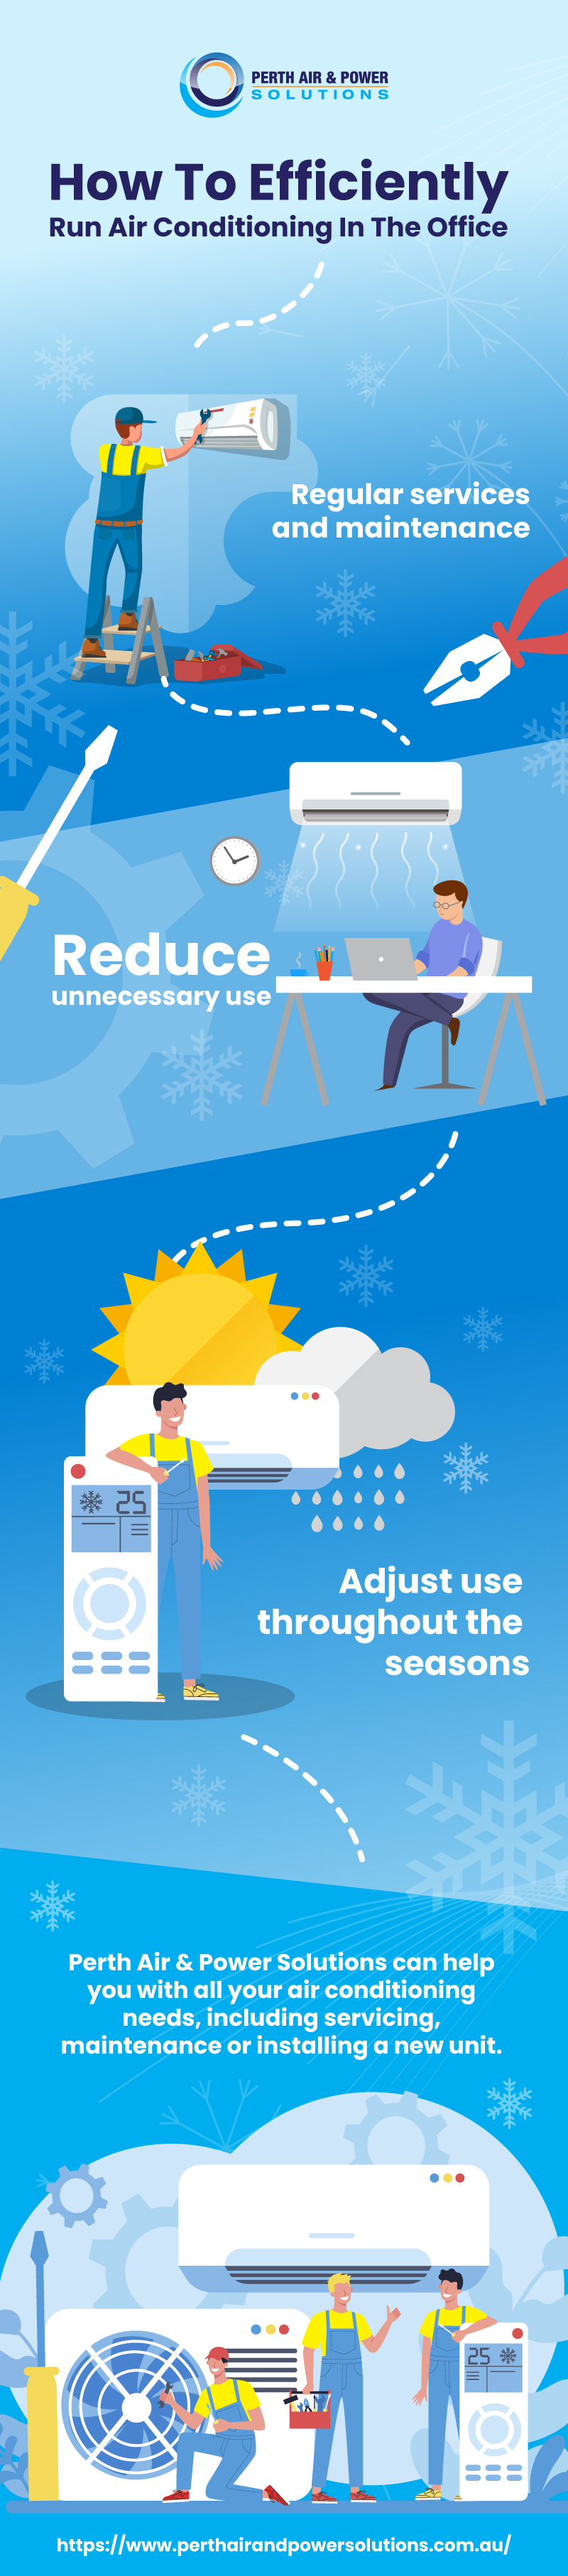 HOW TO EFFICIENTLY RUN AIR CONDITIONING IN THE OFFICE